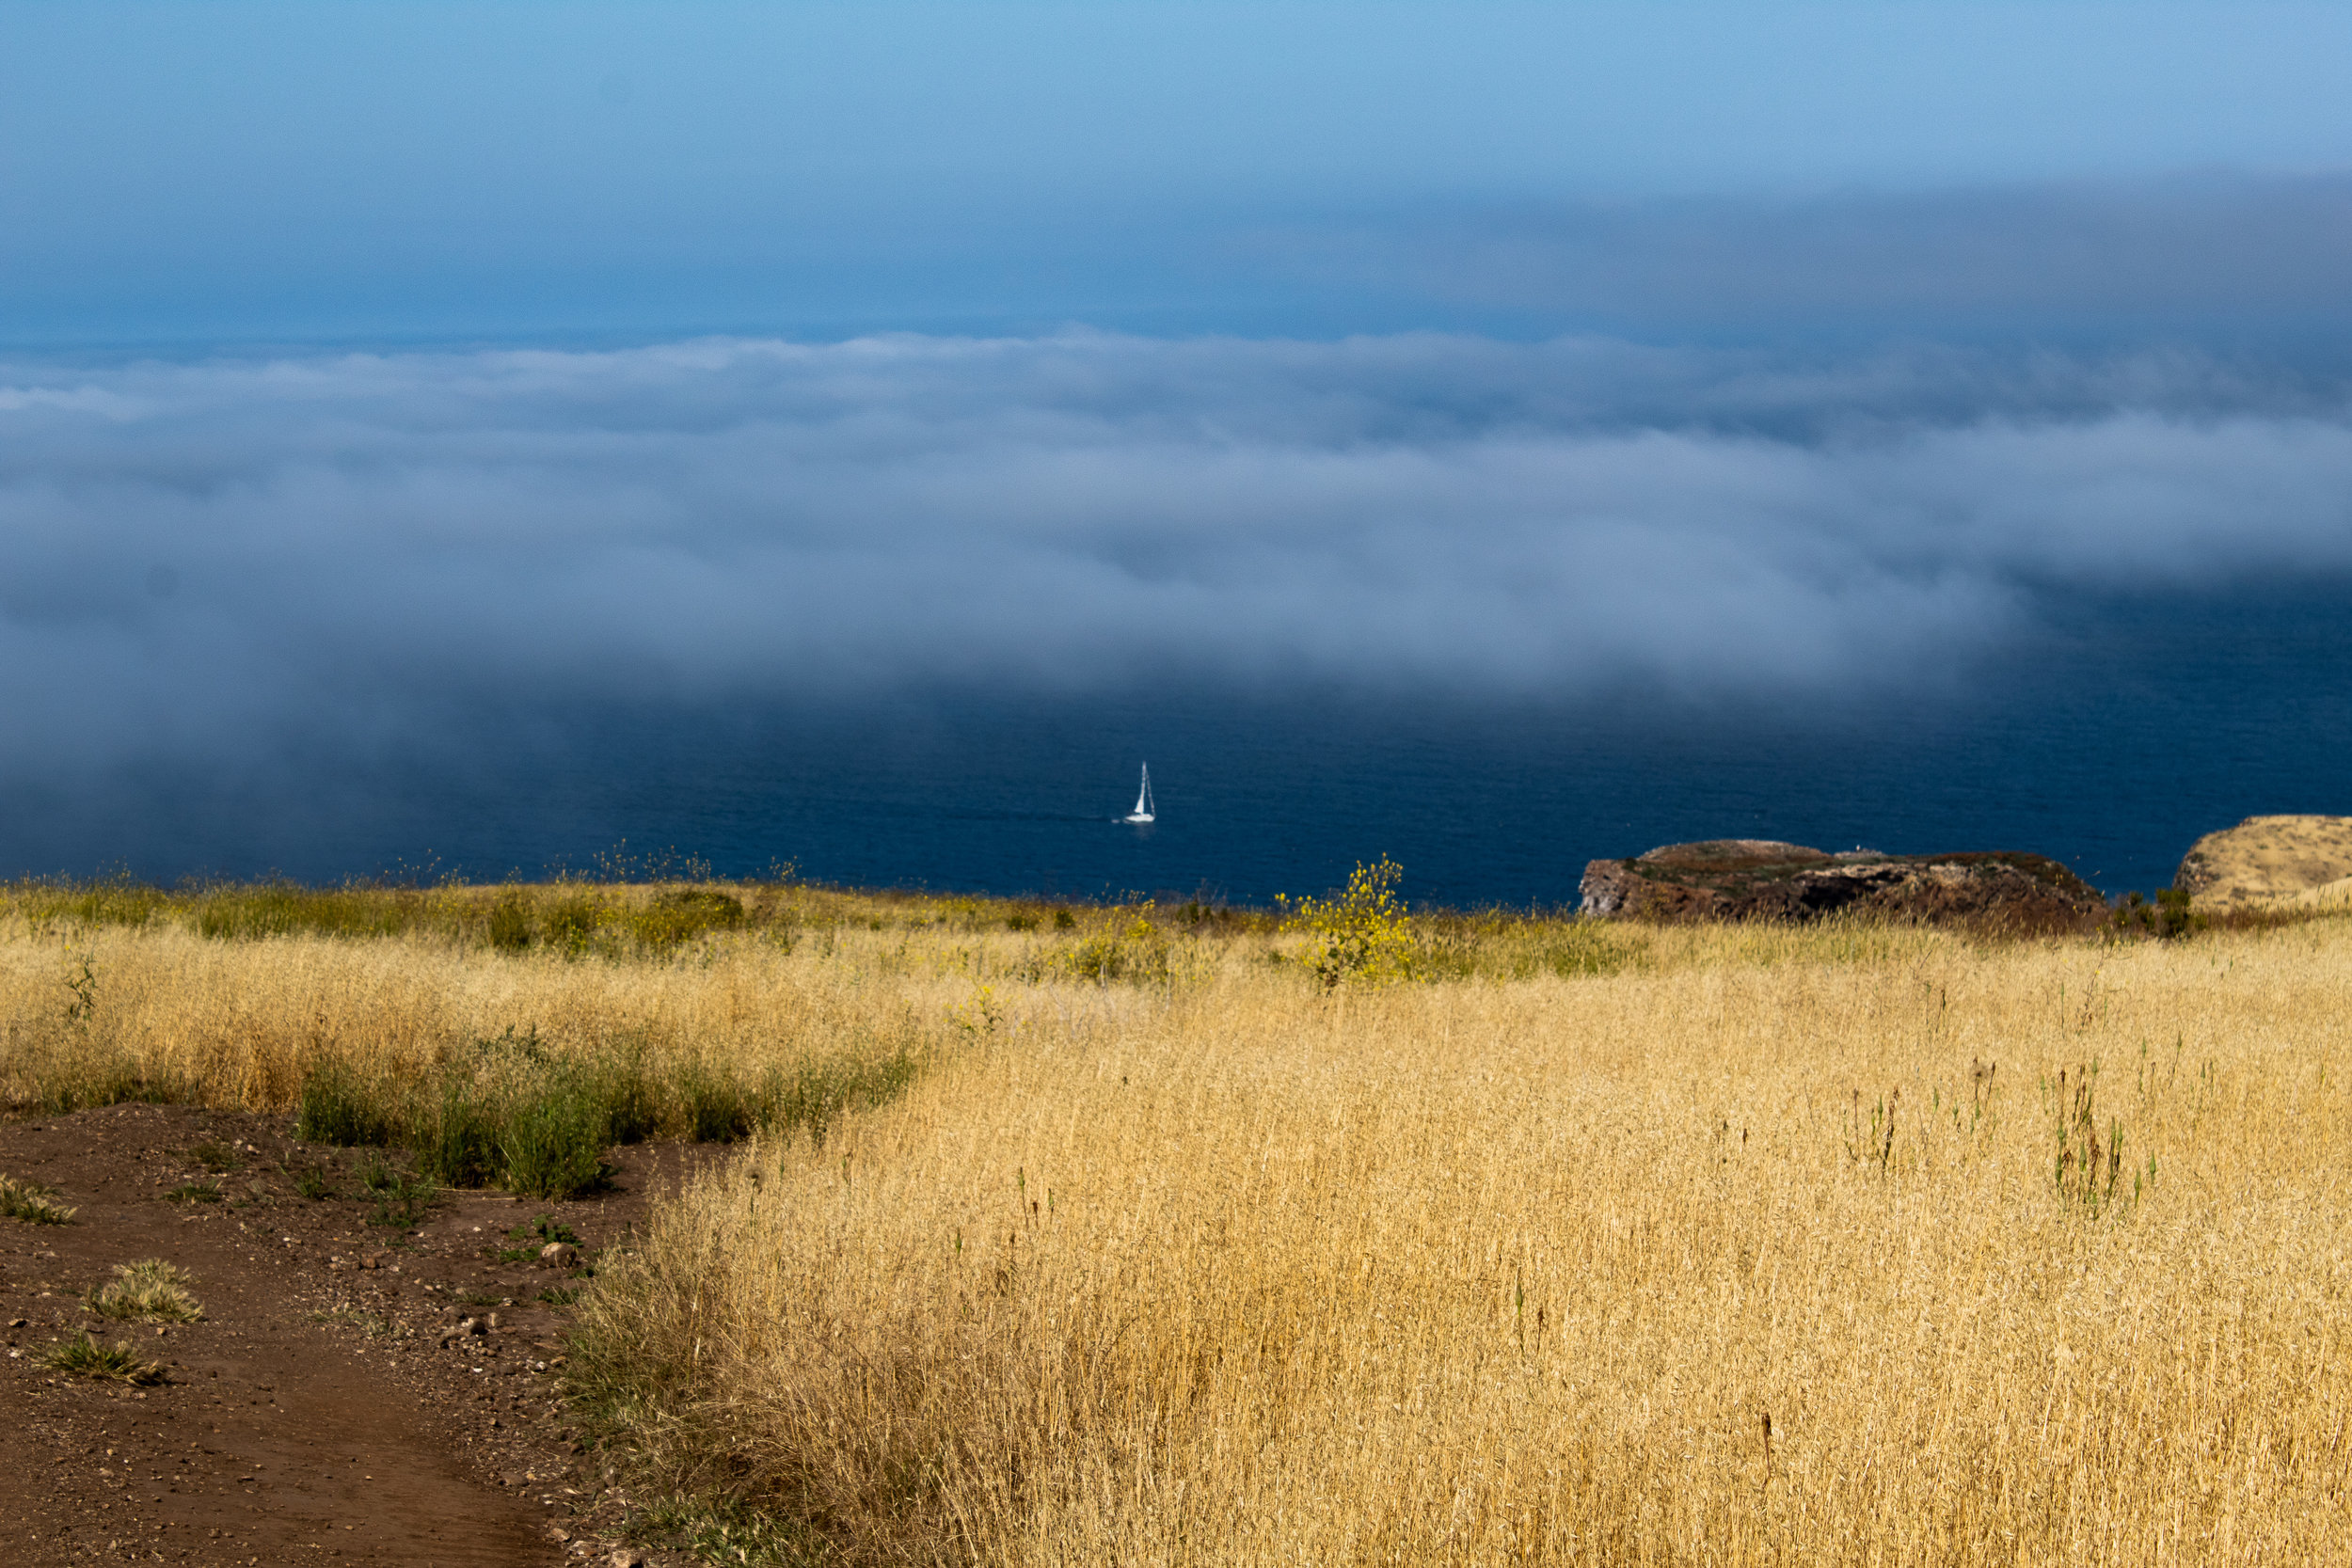 View from Smuggler's Road on Santa Cruz Island, Channel Islands National Park, May 2019; photo by Chad Woodward.